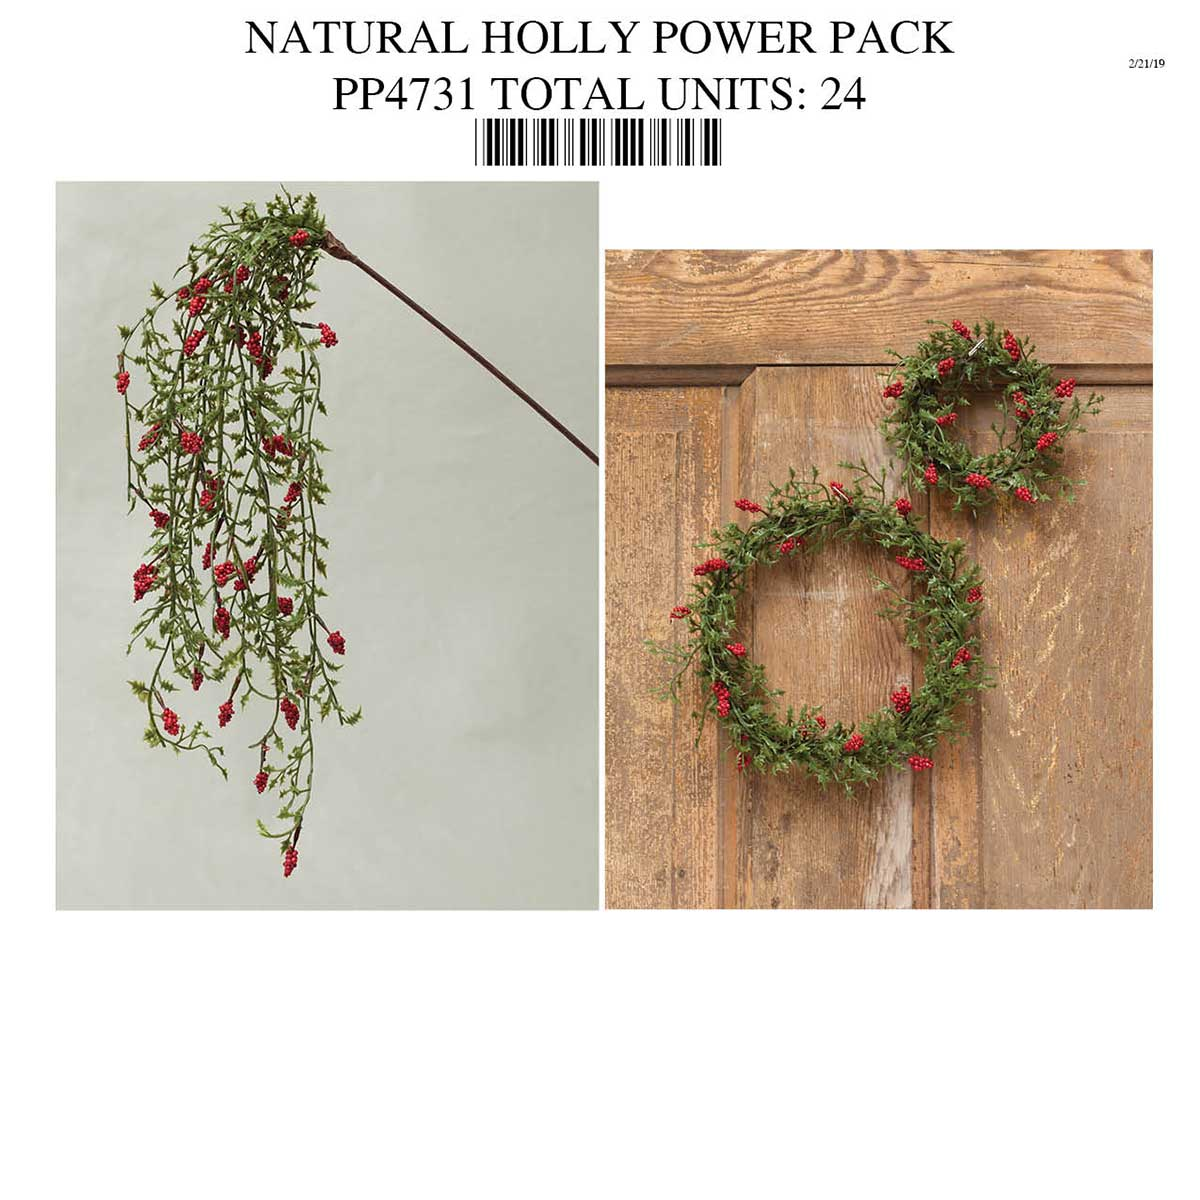 MINI NATURAL HOLLY POWER PACK PP4731